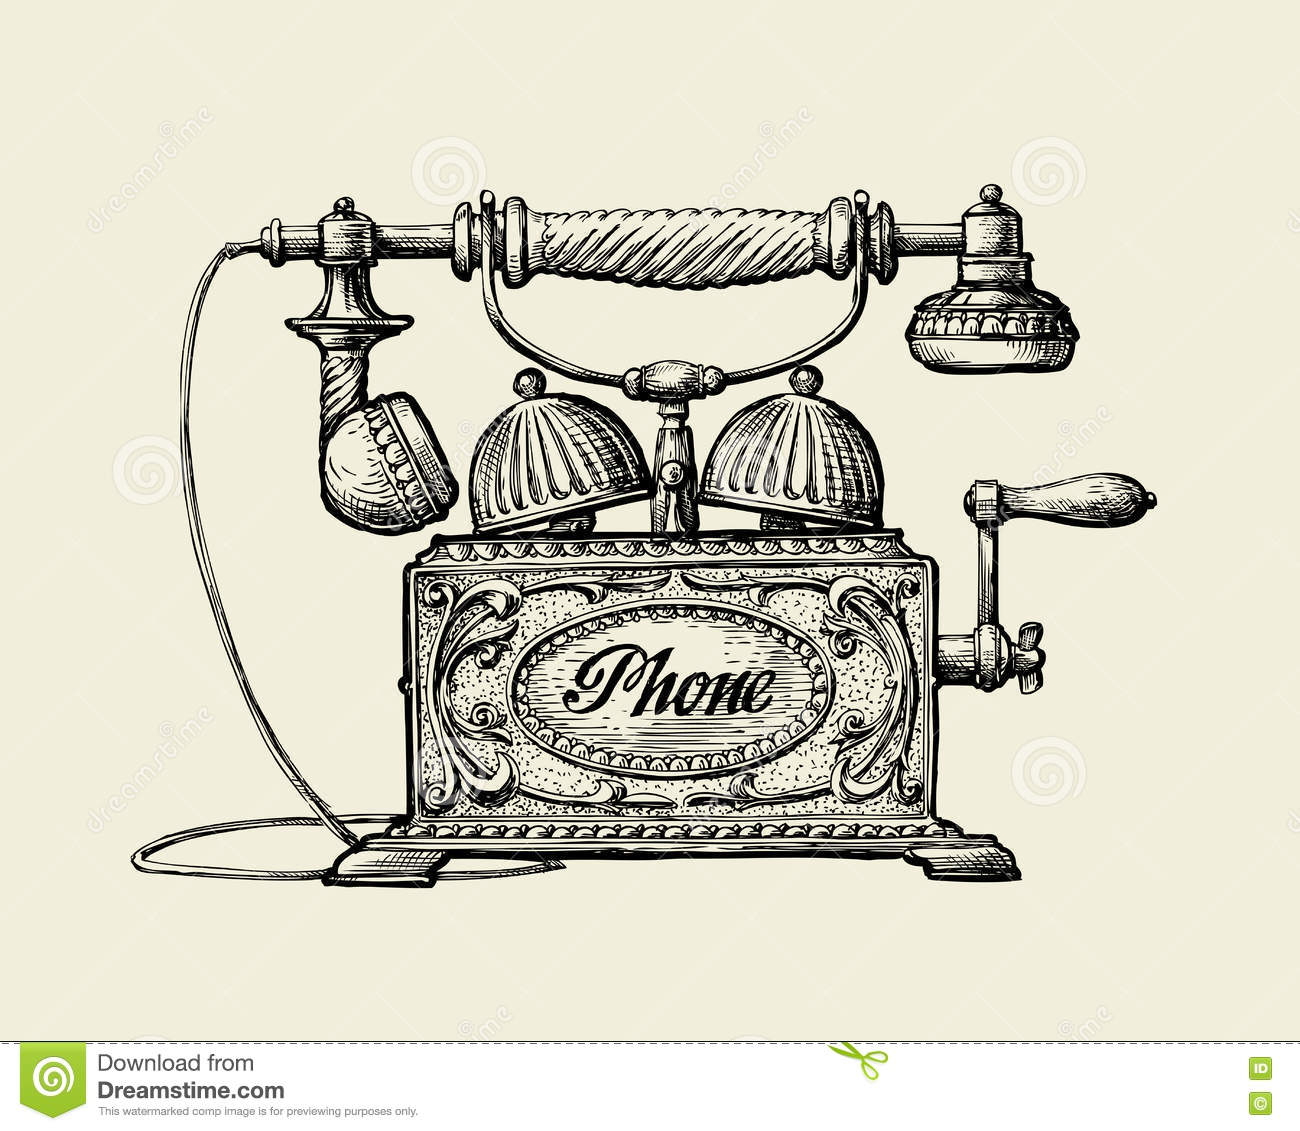 Vintage telephone. Hand-drawn sketch retro phone. Vector illustration